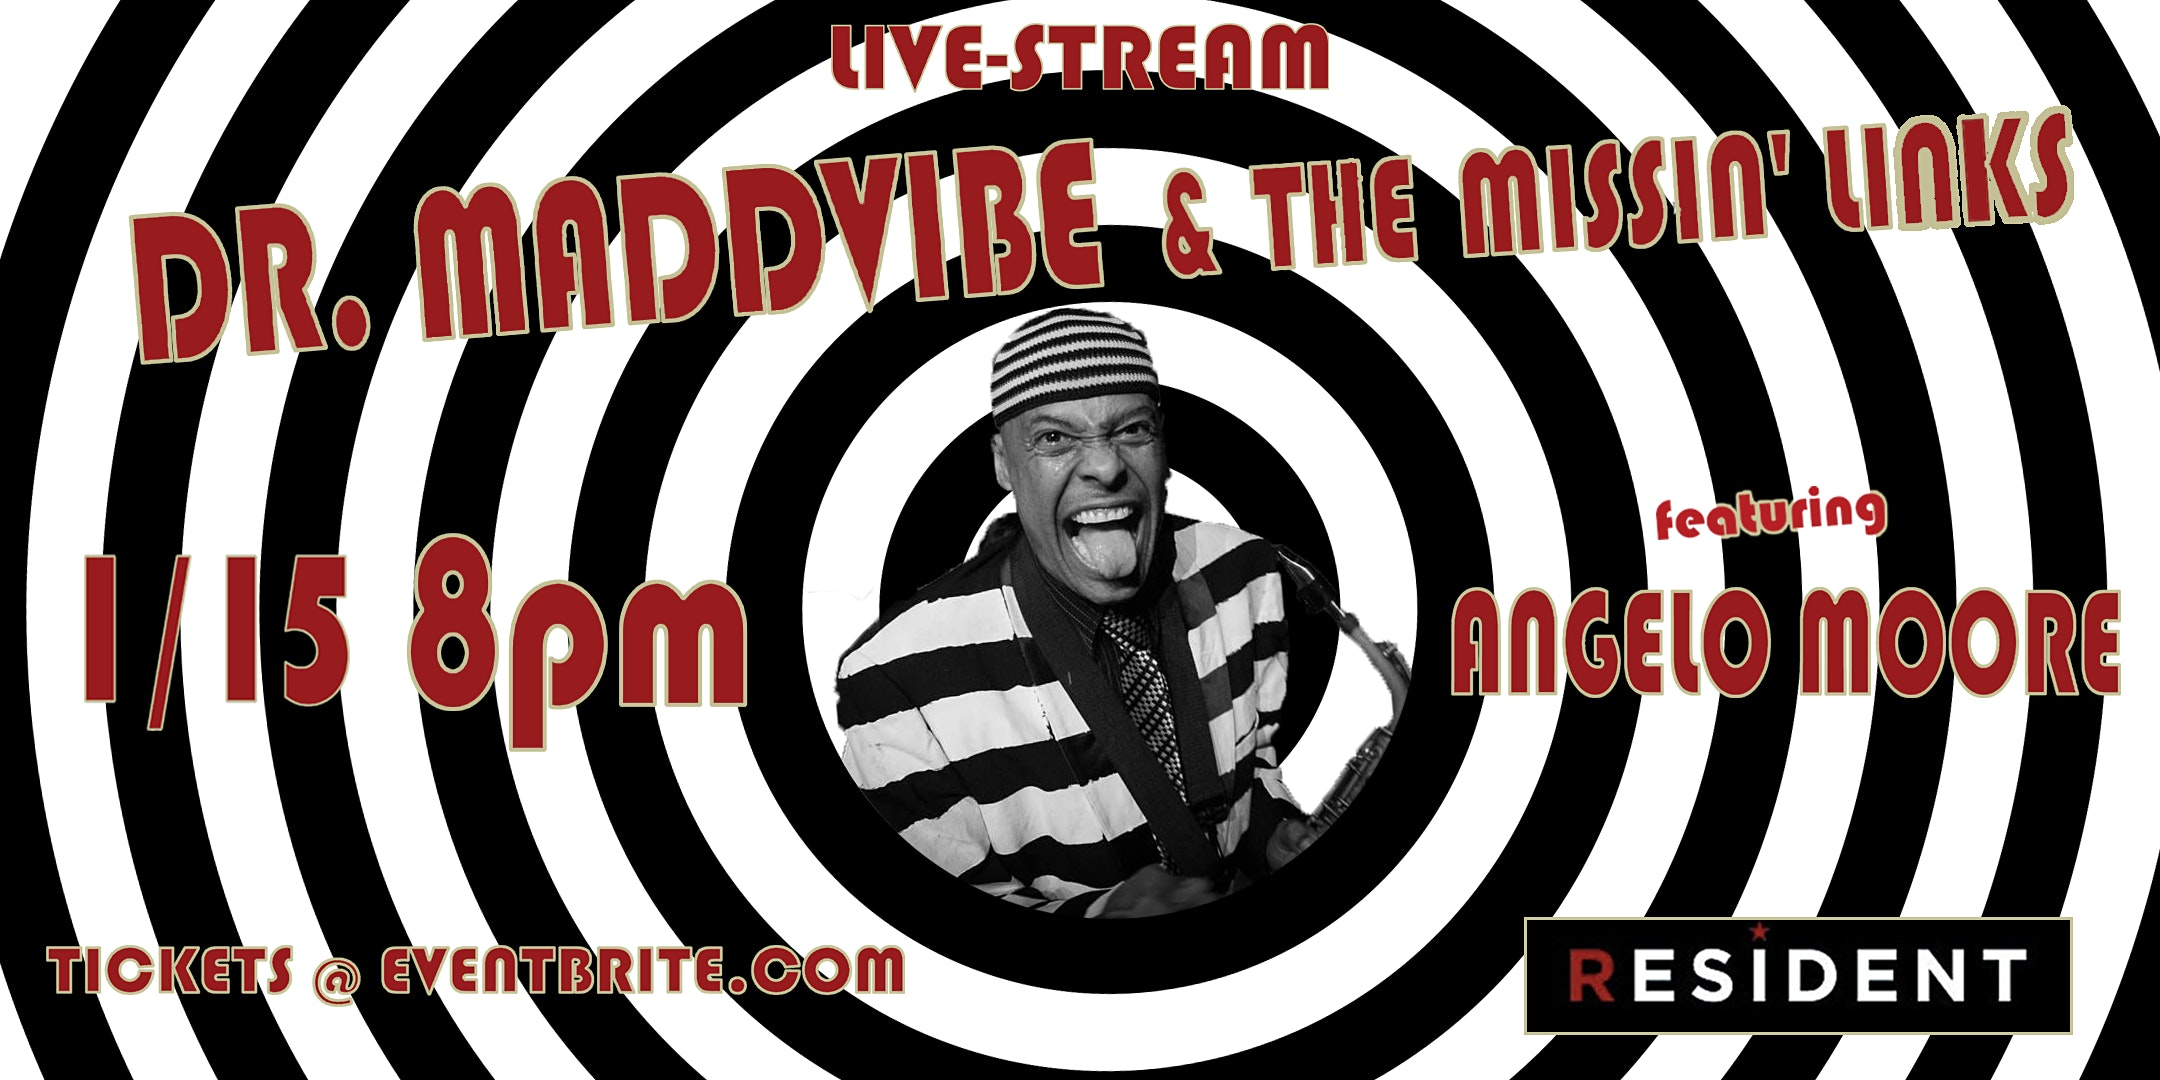 Dr. Maddvibes & the Missin' Links